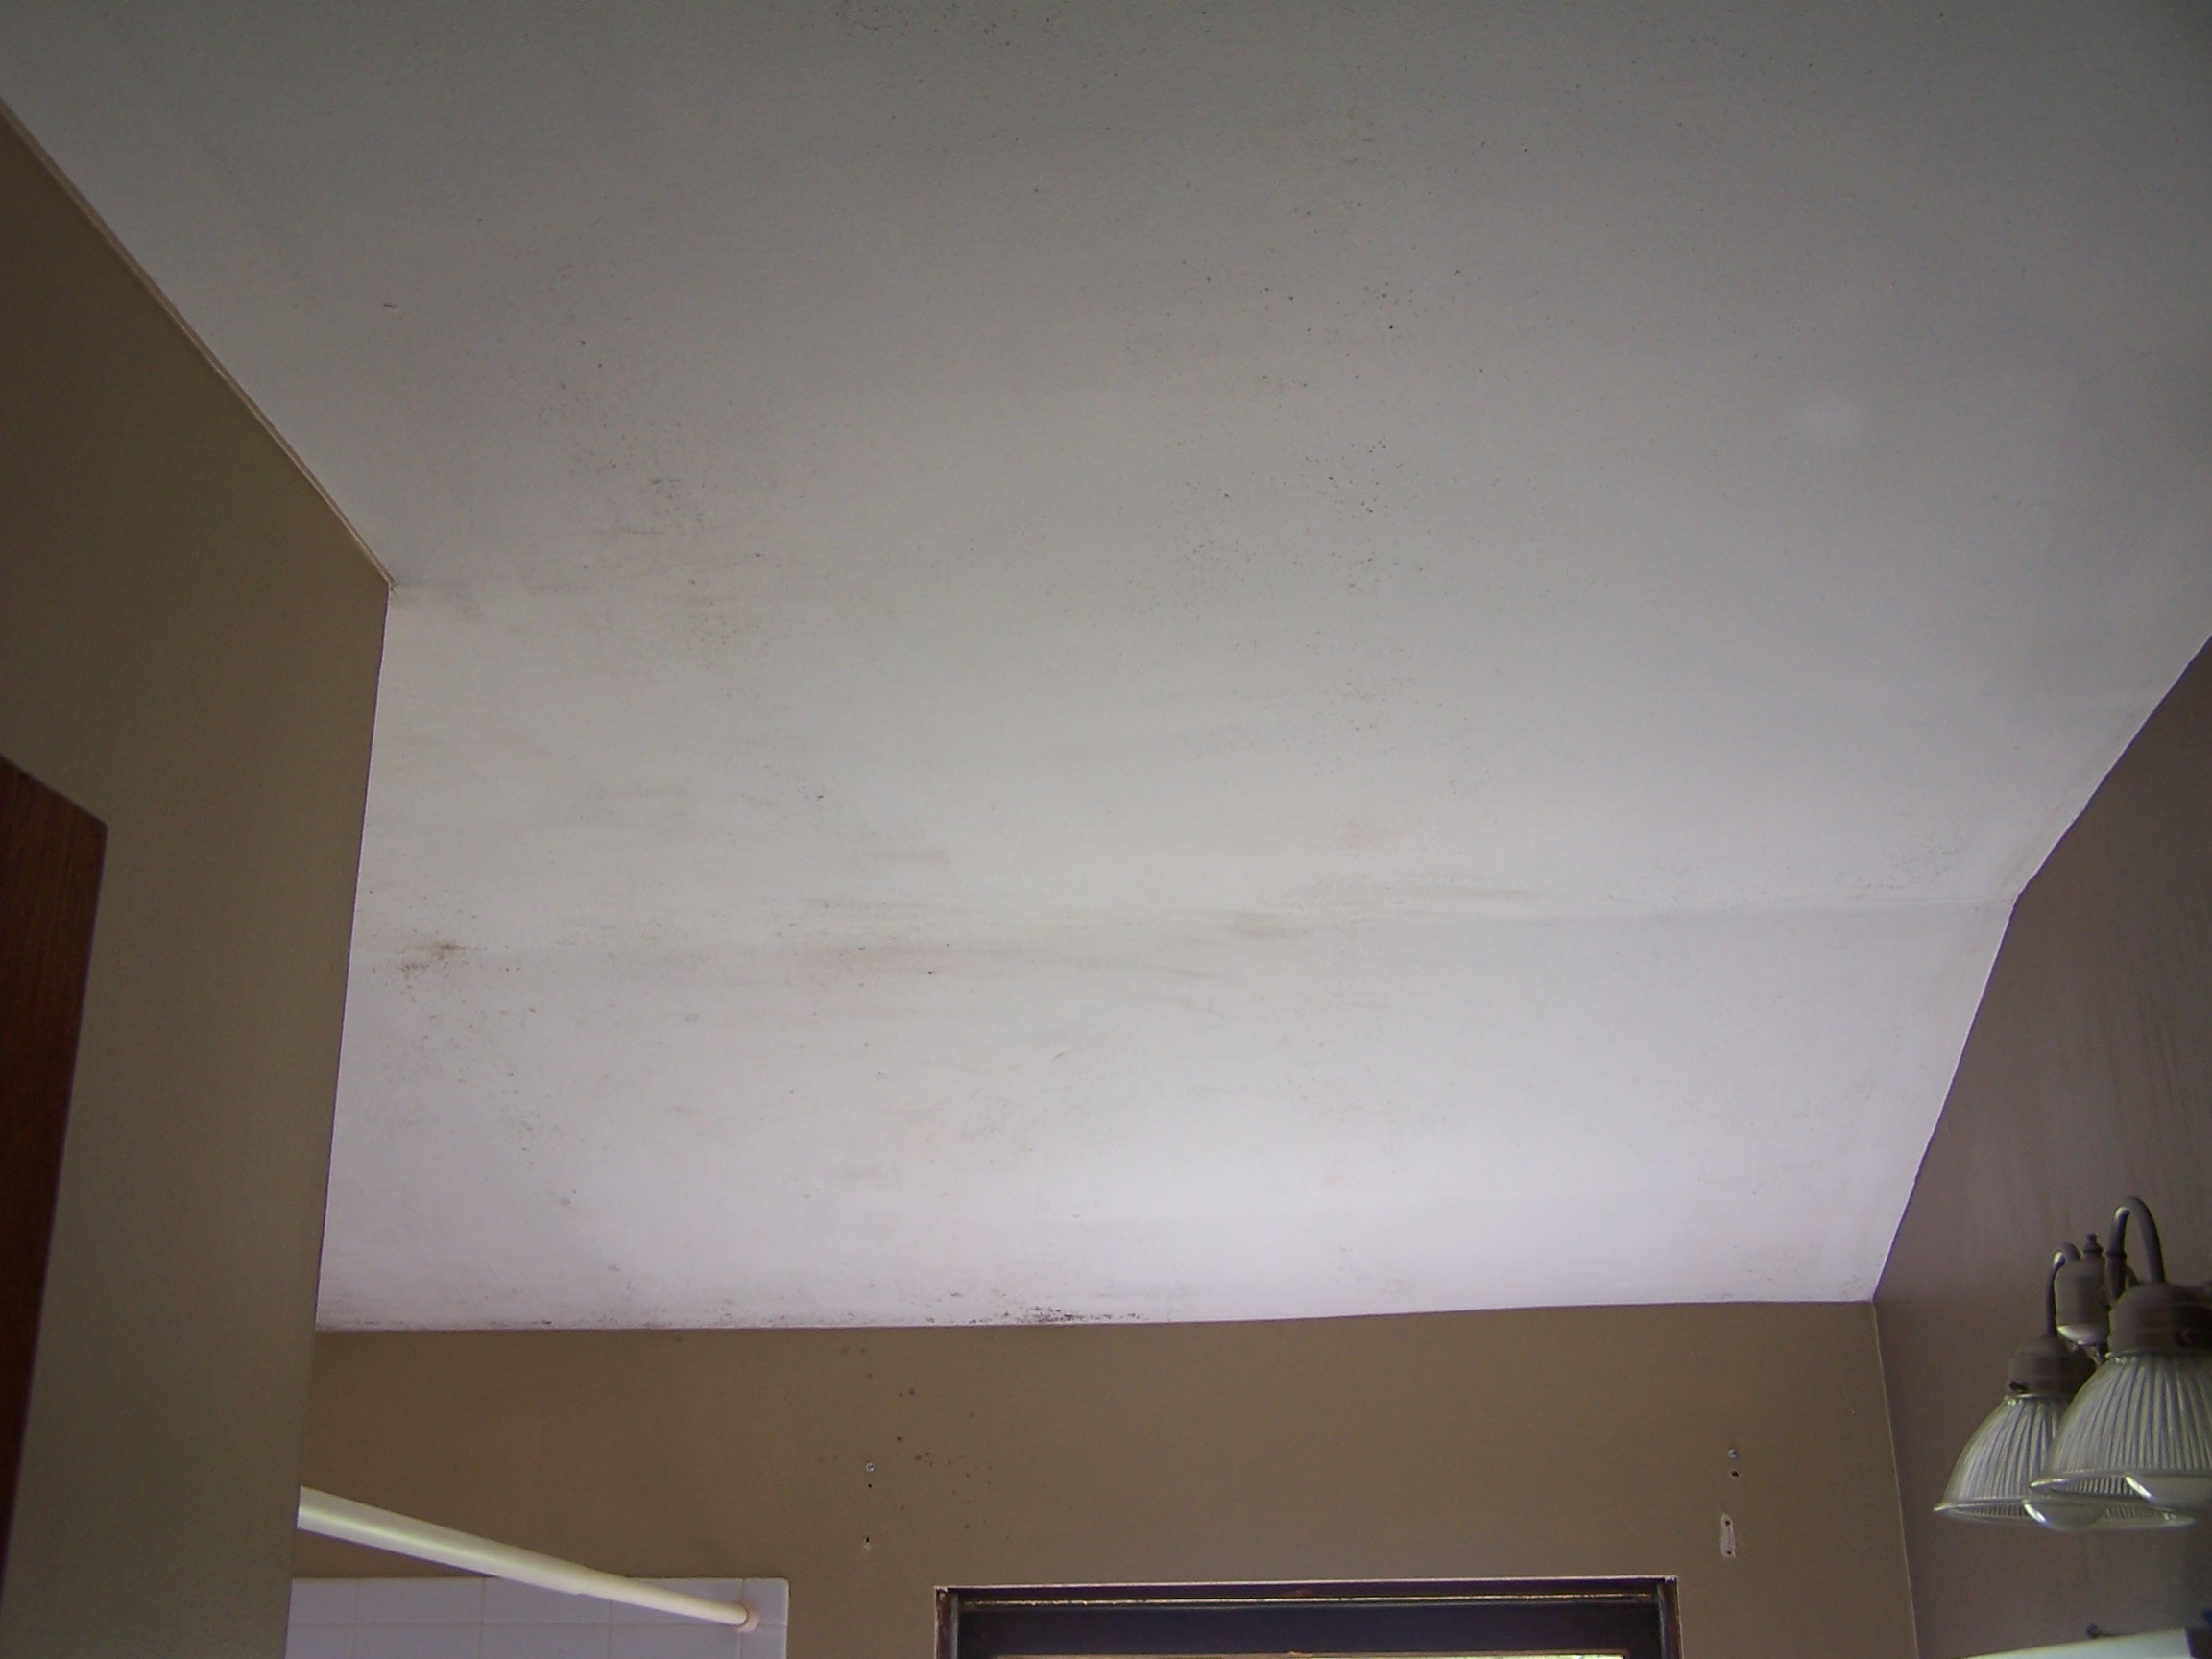 Dangers of mold in bathroom - So Since June Of 2010 I Had Been Cleaning The Ceiling On My Own Not Knowing The Dangers Or Toxicity Of It And He Did Not Take Action To Get A Mold